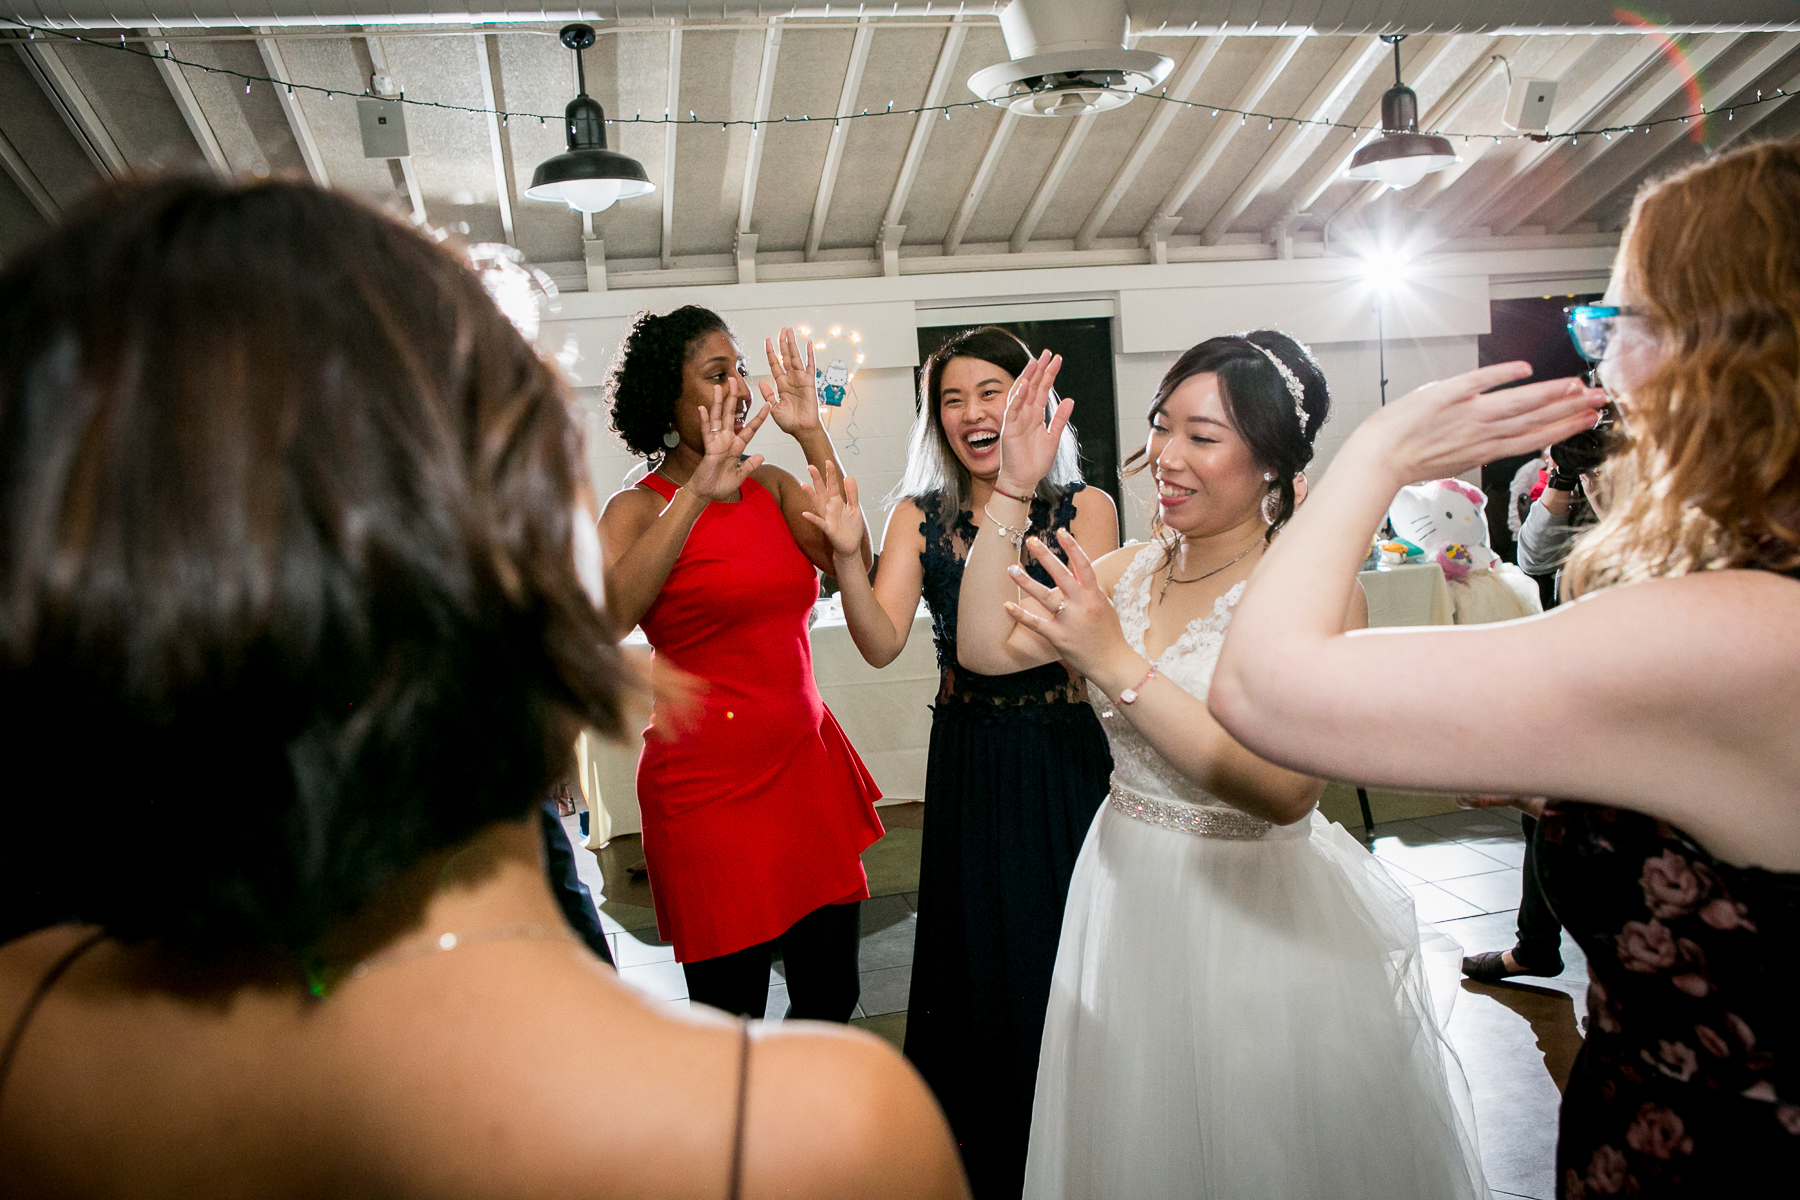 bride dances in middle of dance floor at wedding photos in chino hills